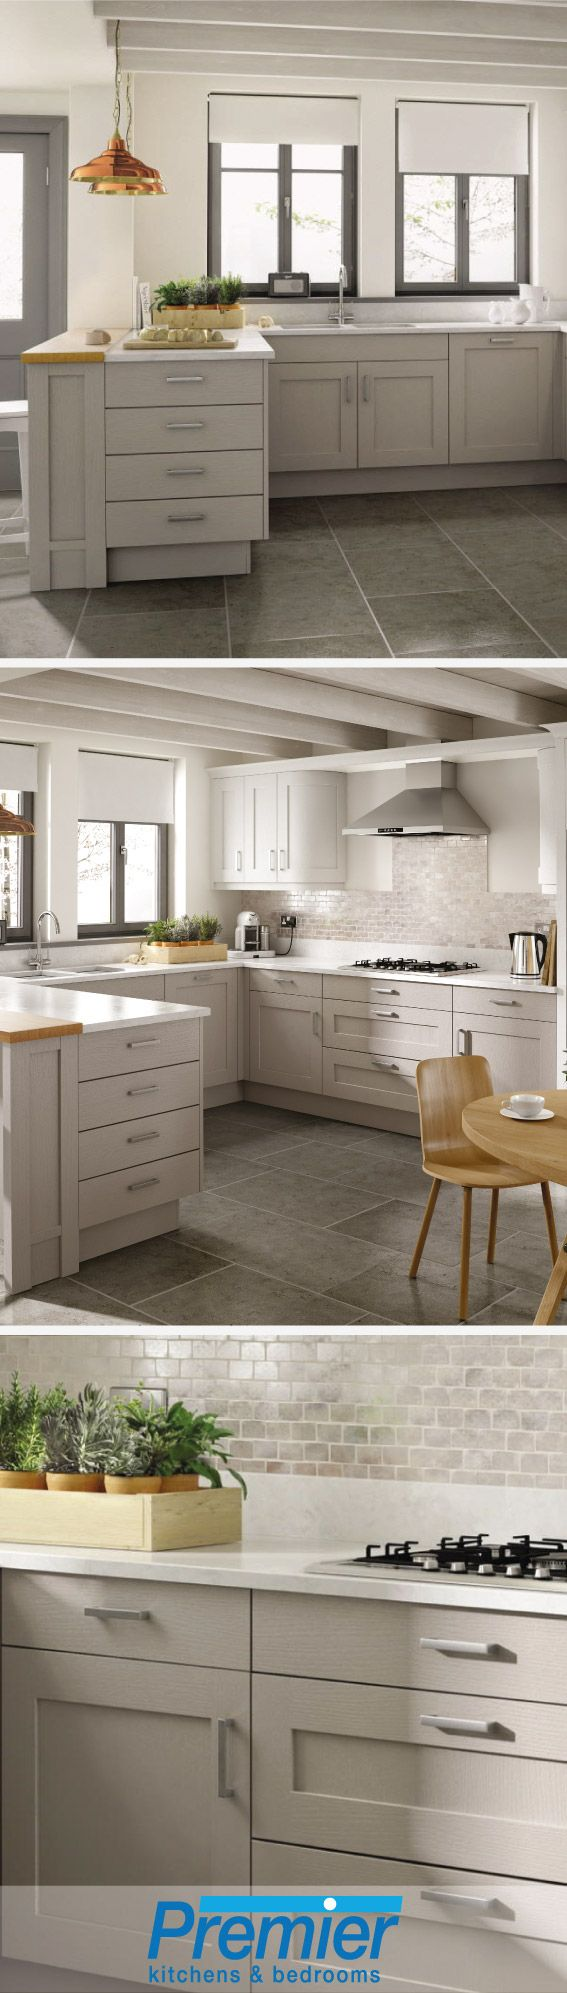 Could this stunning Mornington Shaker be your next kitchen? Whether you are looking for a classic or a contemporary kitchen, we have a variety of different ranges to suit every home. So hurry and book your FREE 3D plan and design appointment today and take advantage of our FREE fitting offer!